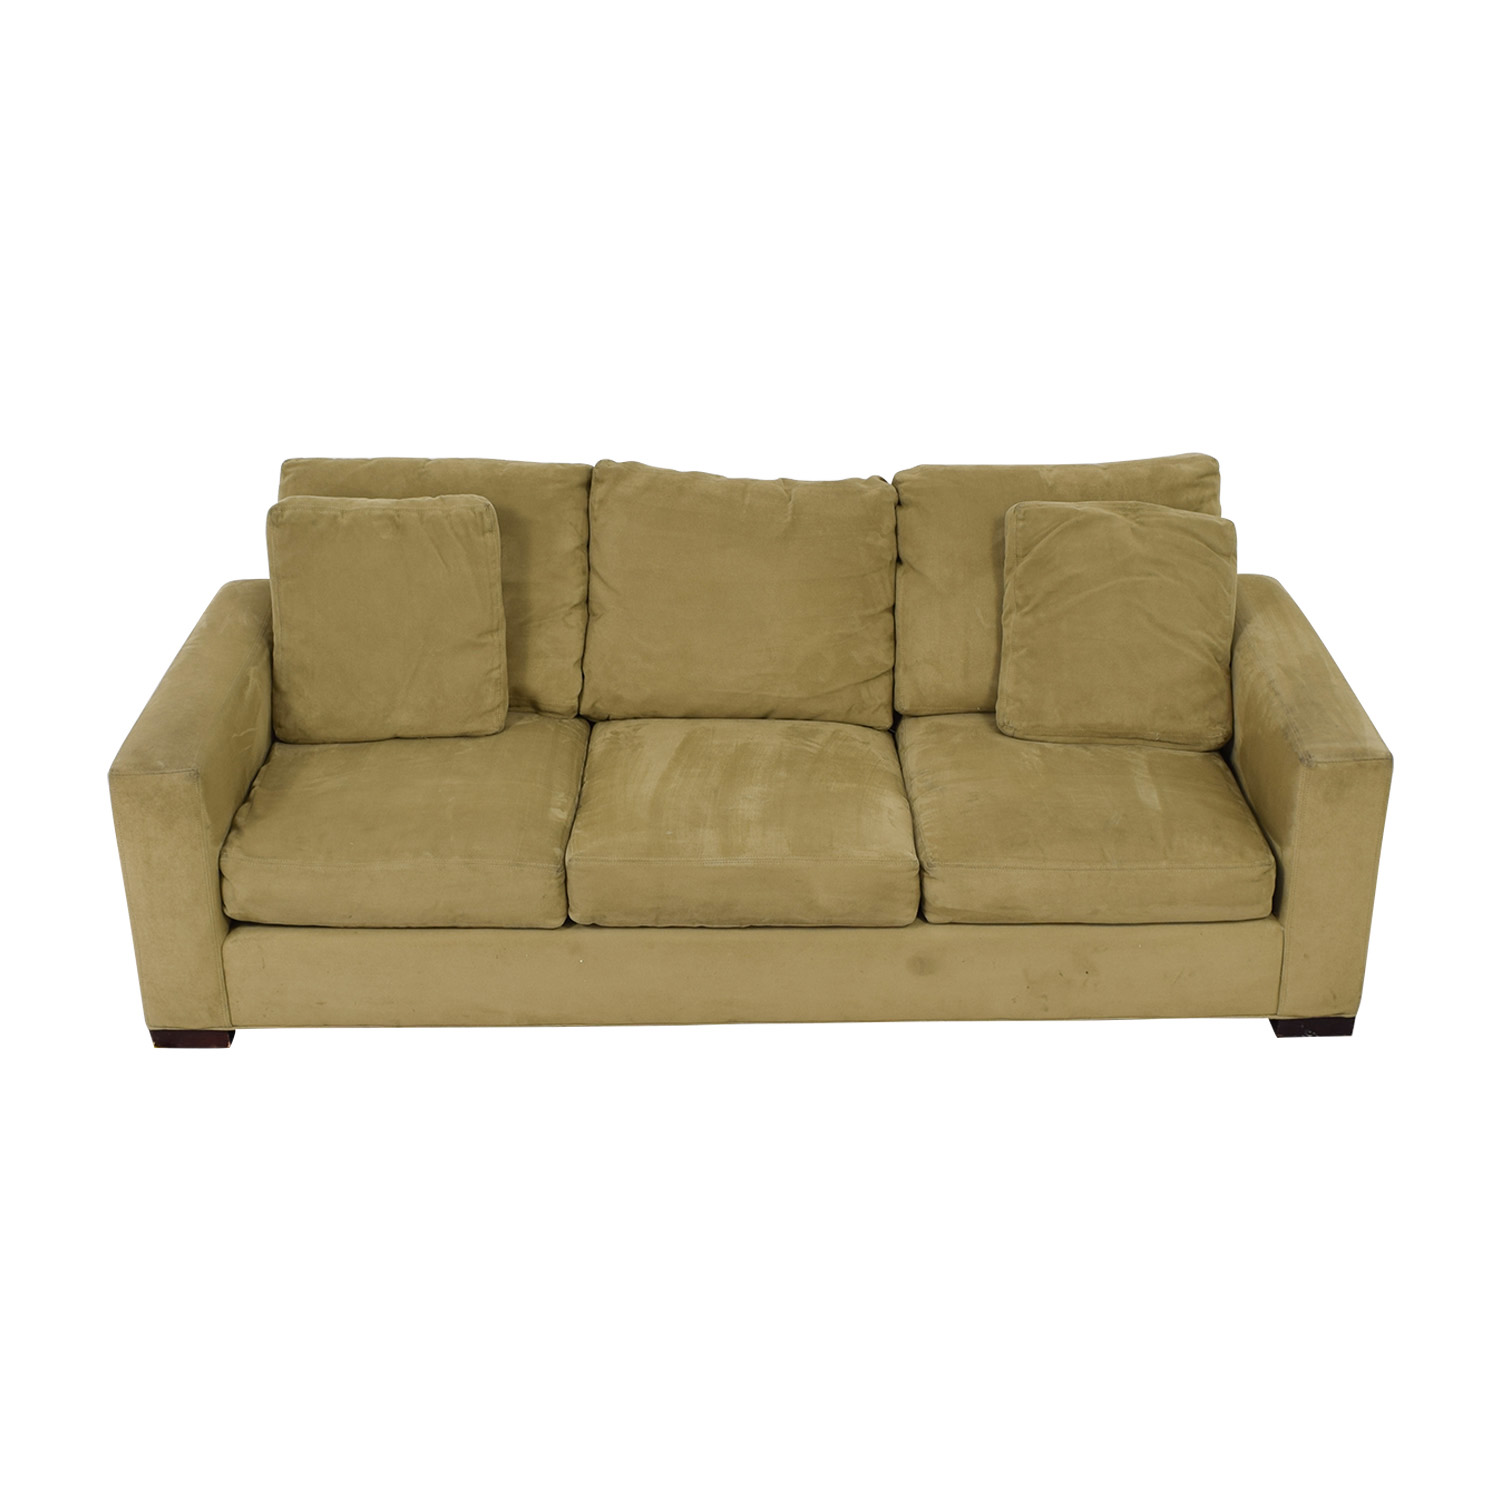 Room & Board Room & Board Metro Beige Three-Cushion Sofa for sale